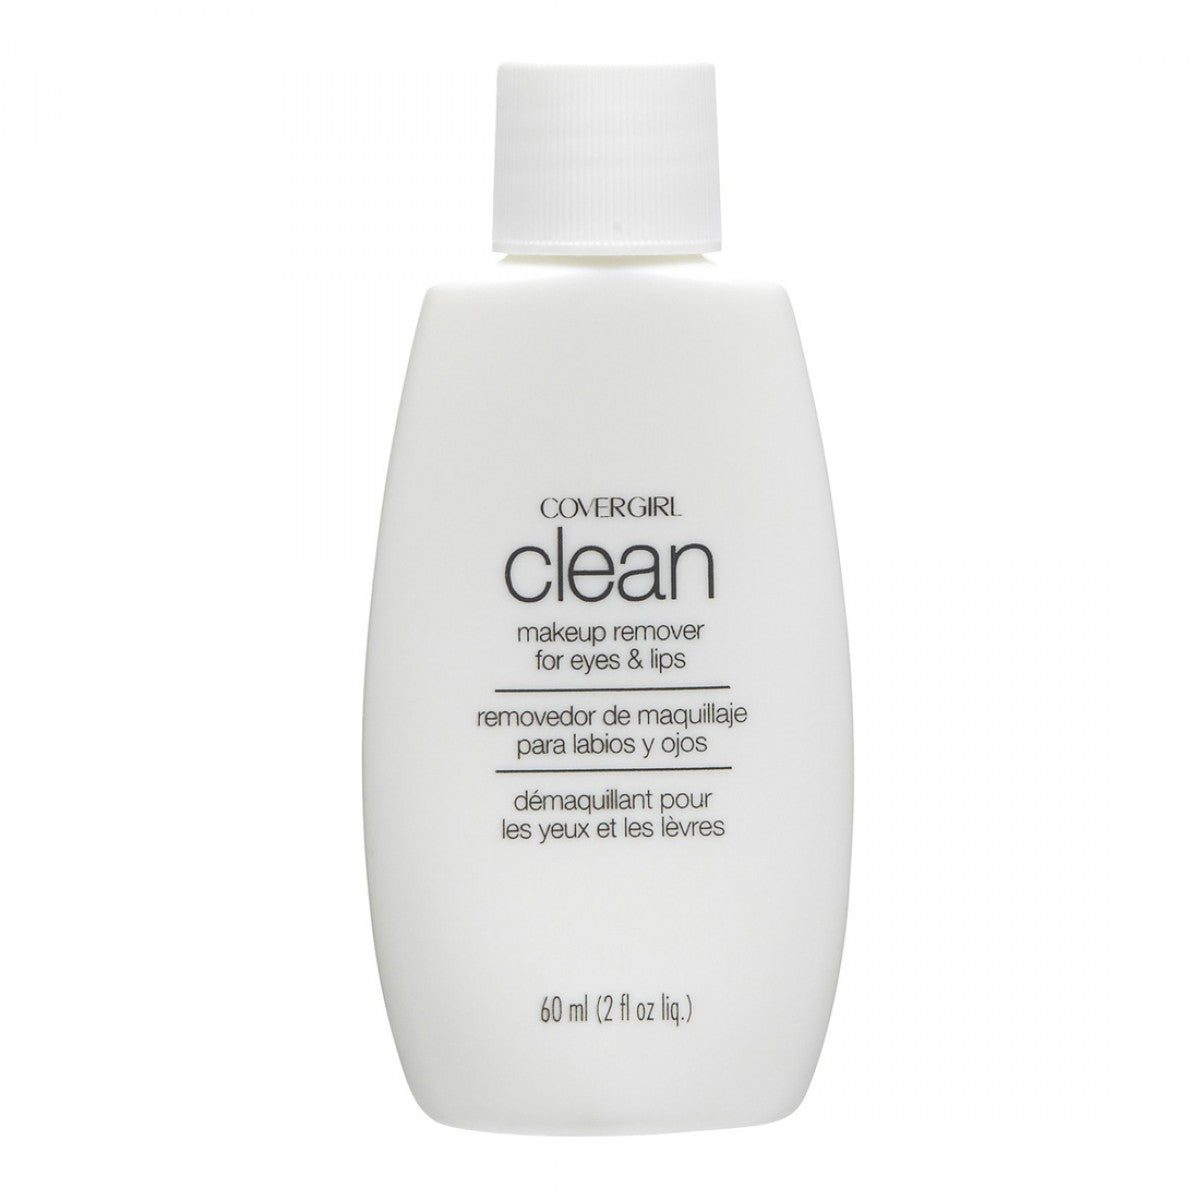 Covergirl Clean Makeup Remover 60ml